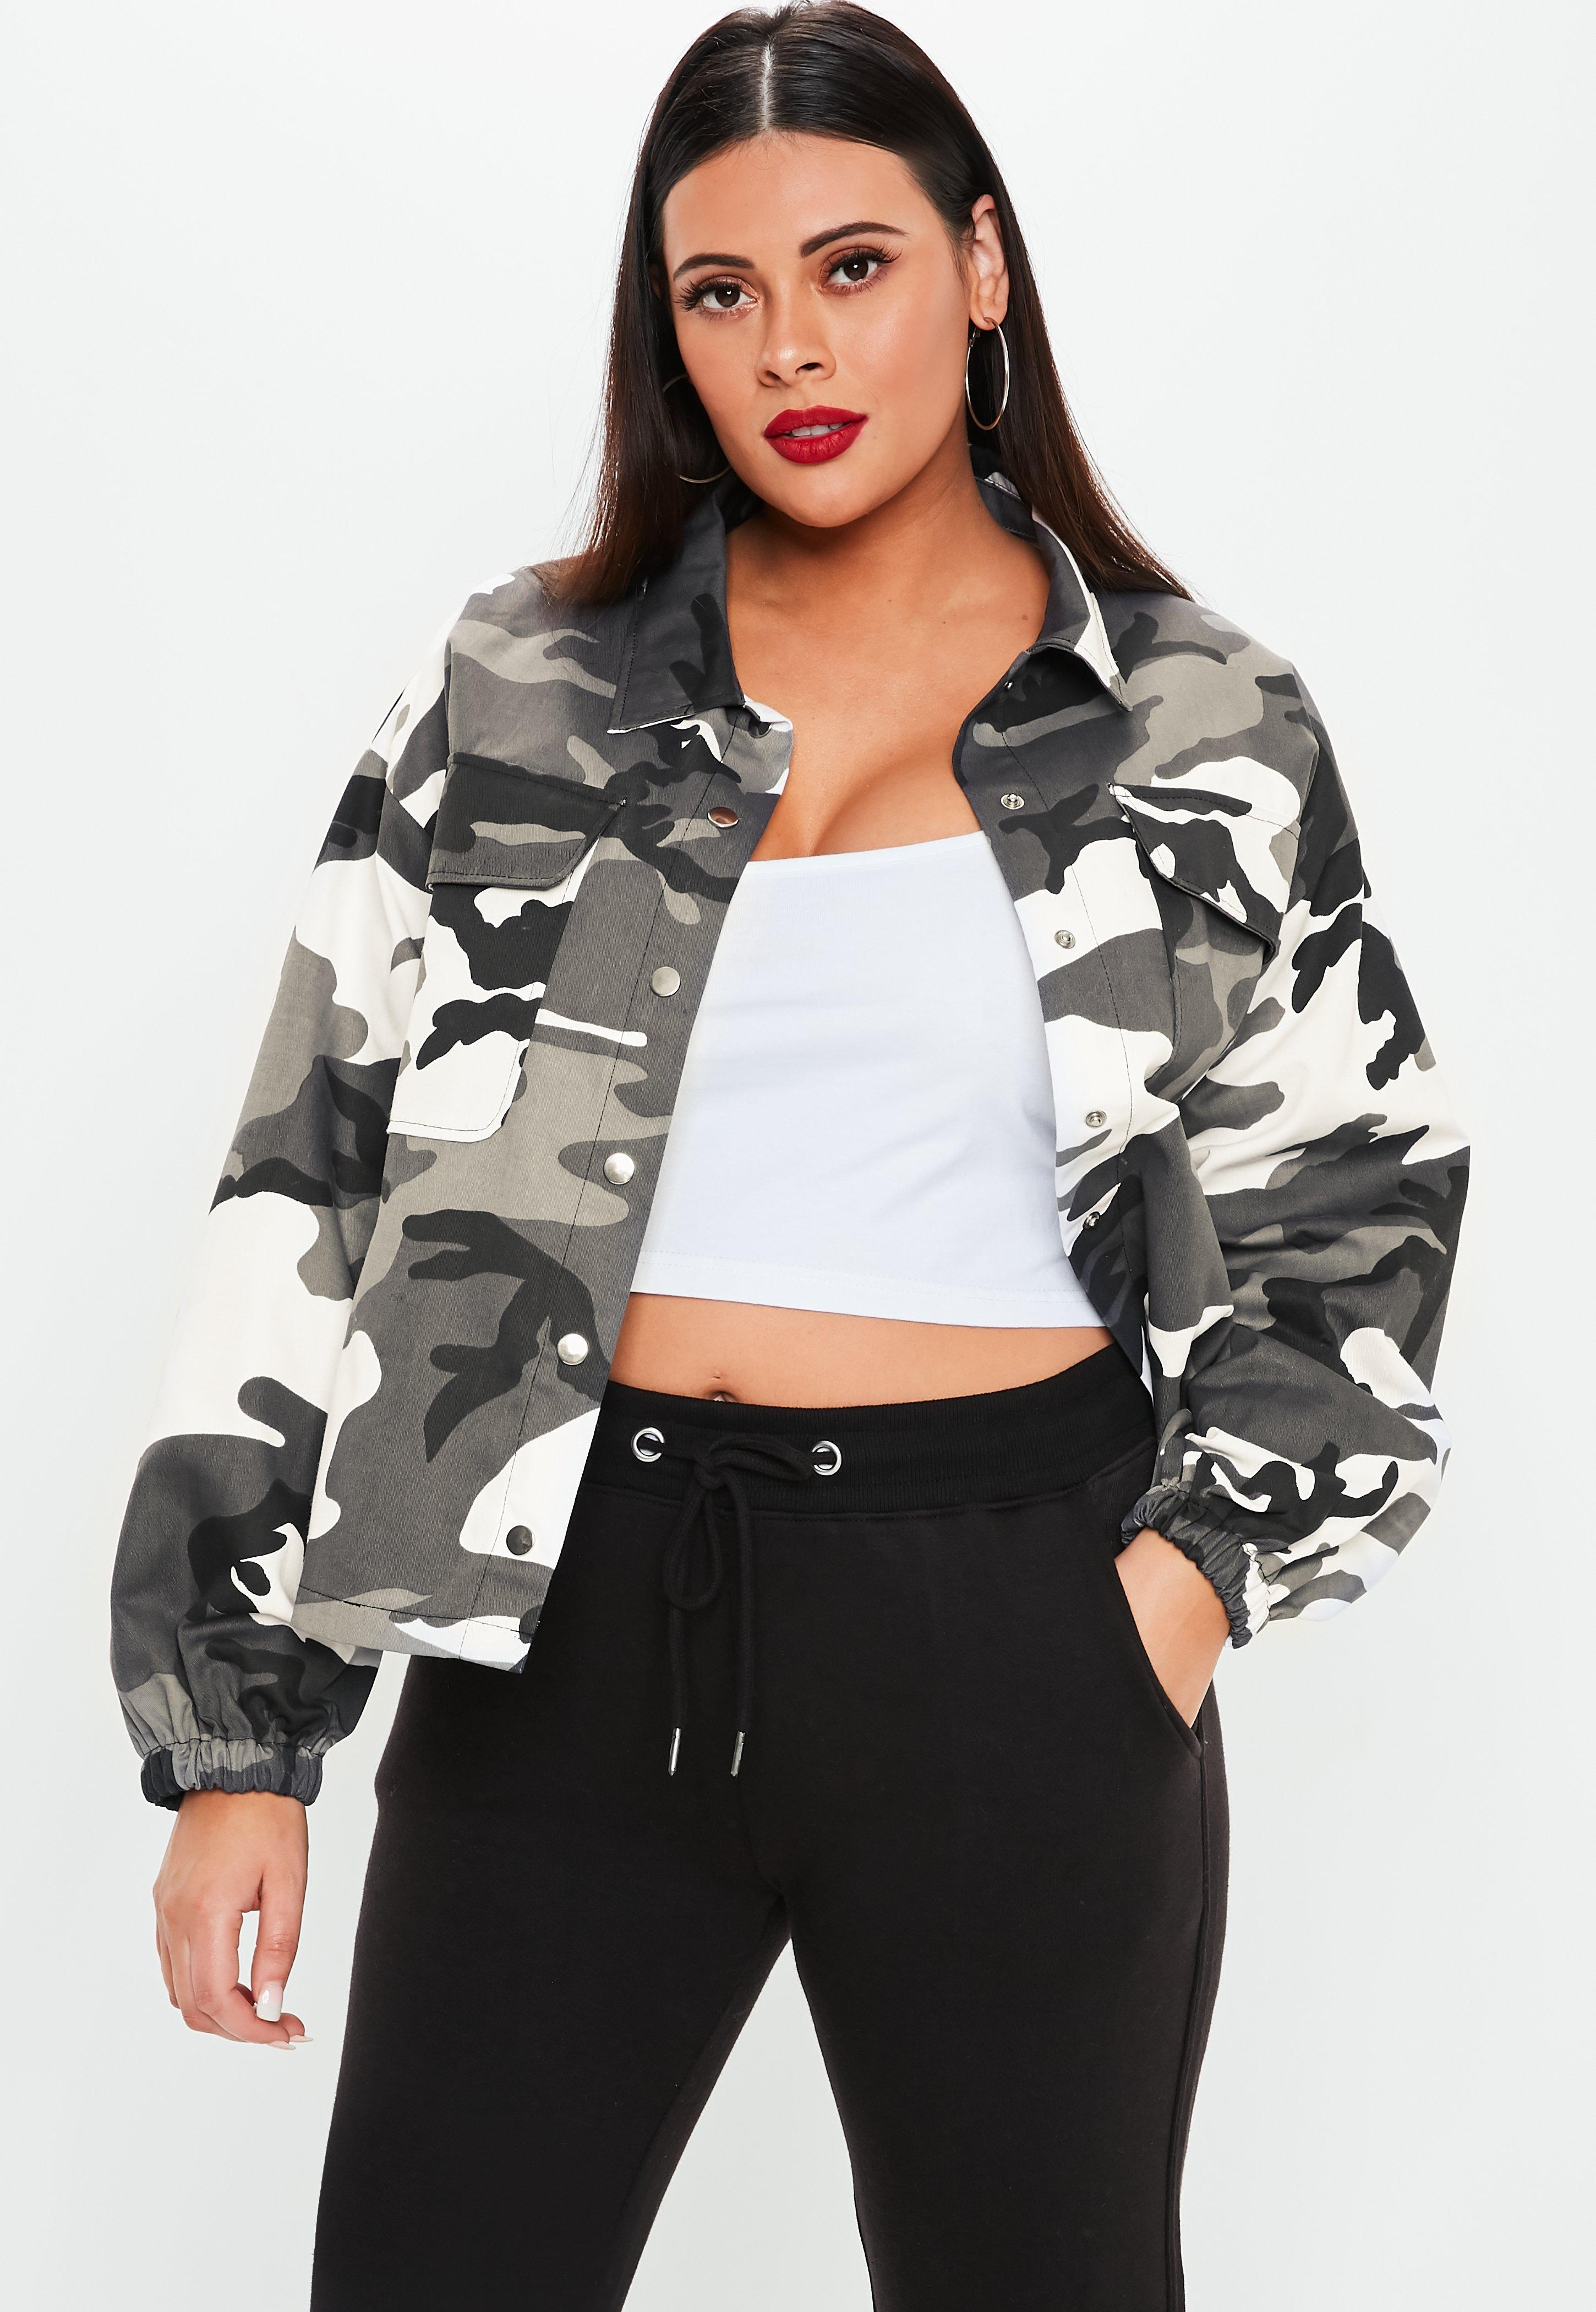 a3ae2410552 Camouflage Dresses   Tops - Camo Fashion - Missguided